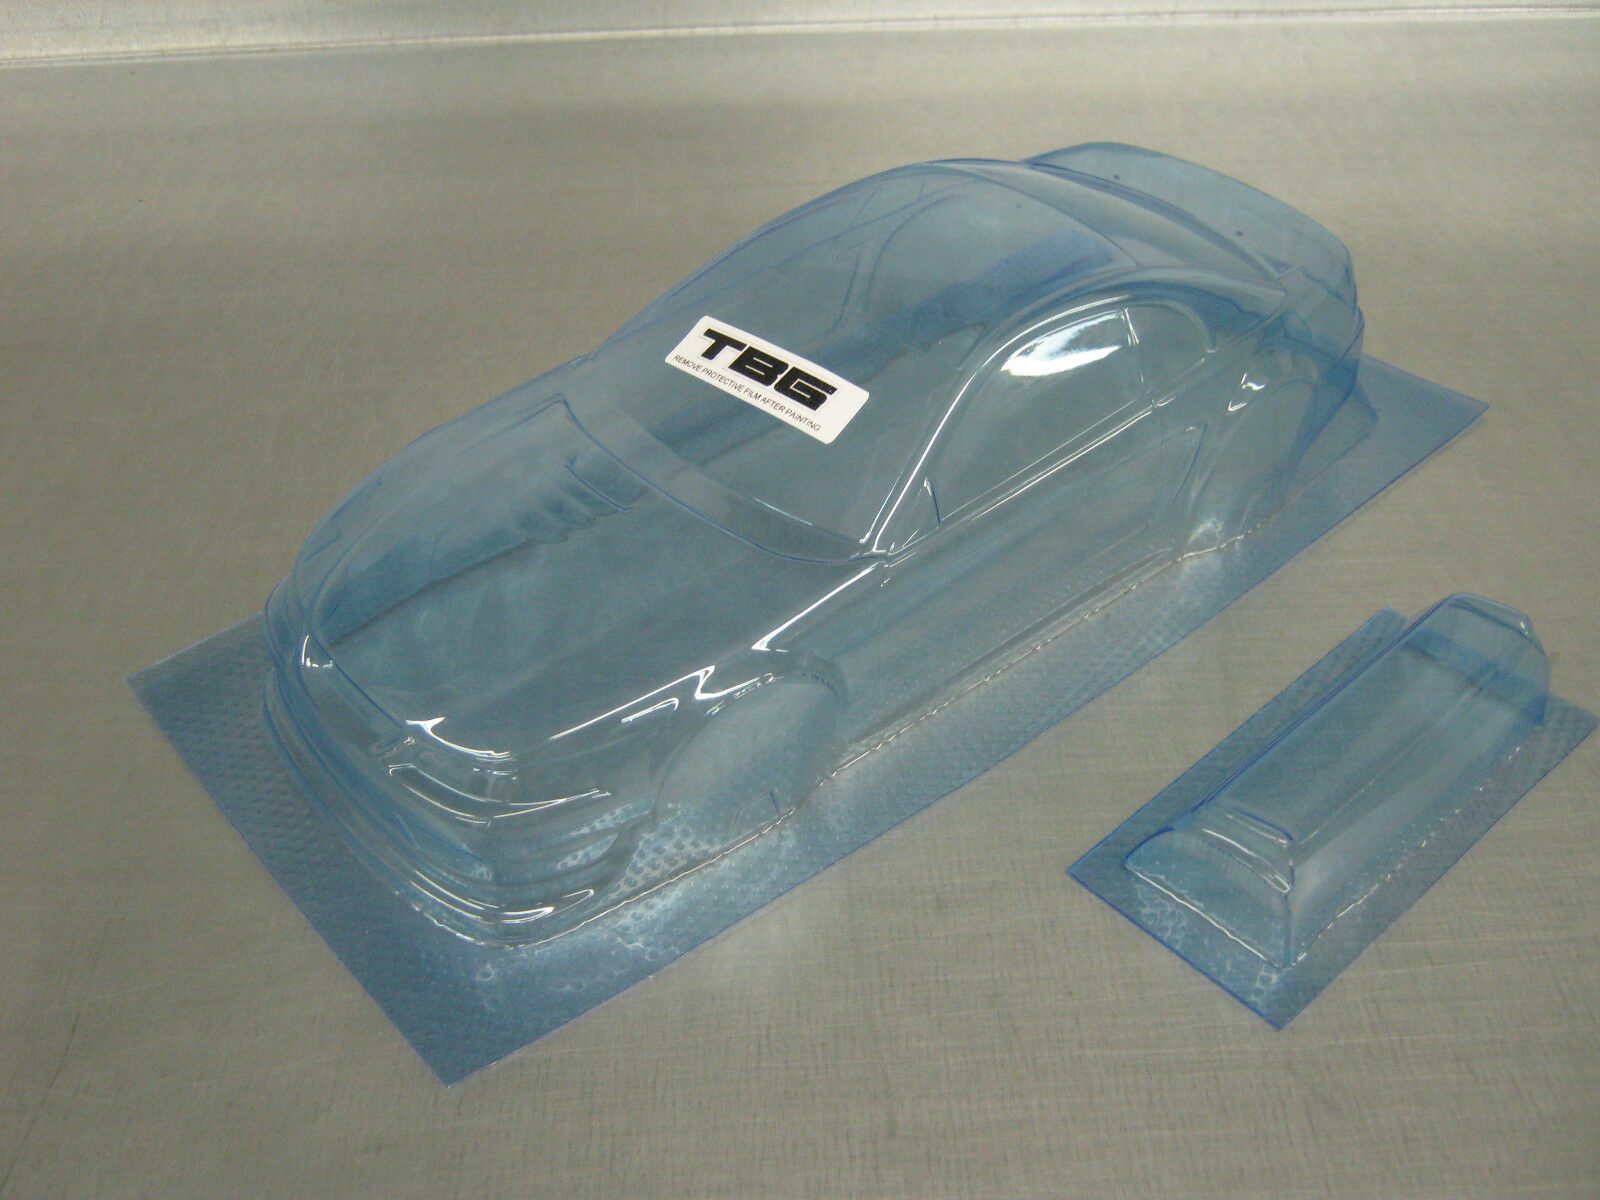 1//18TH CIVIC COUPE BODY FOR HPI MICRO RS4 XRAY M18